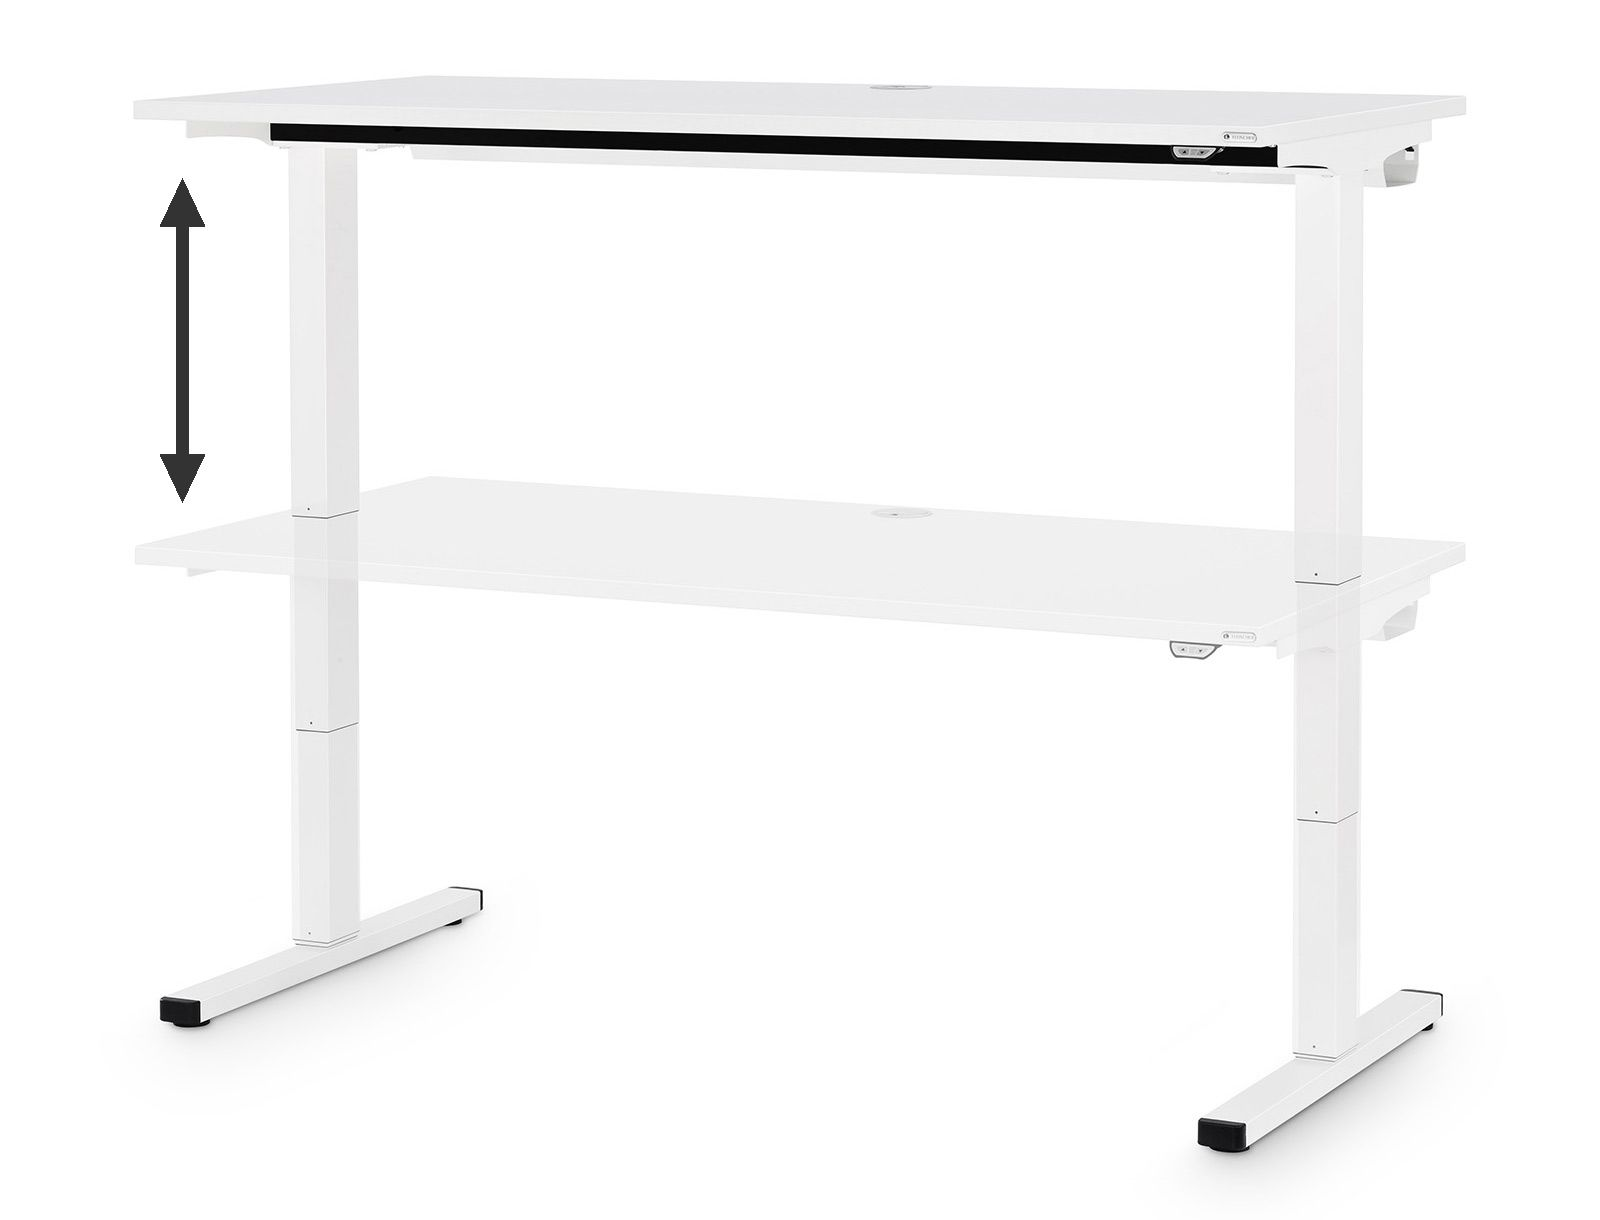 High Quality T Table U2013 Elektrisch Höhenverstellbarer Schreibtisch 160x80cm |  DesignCabinet U2013 Official Herman Miller Store With Aeron Chair